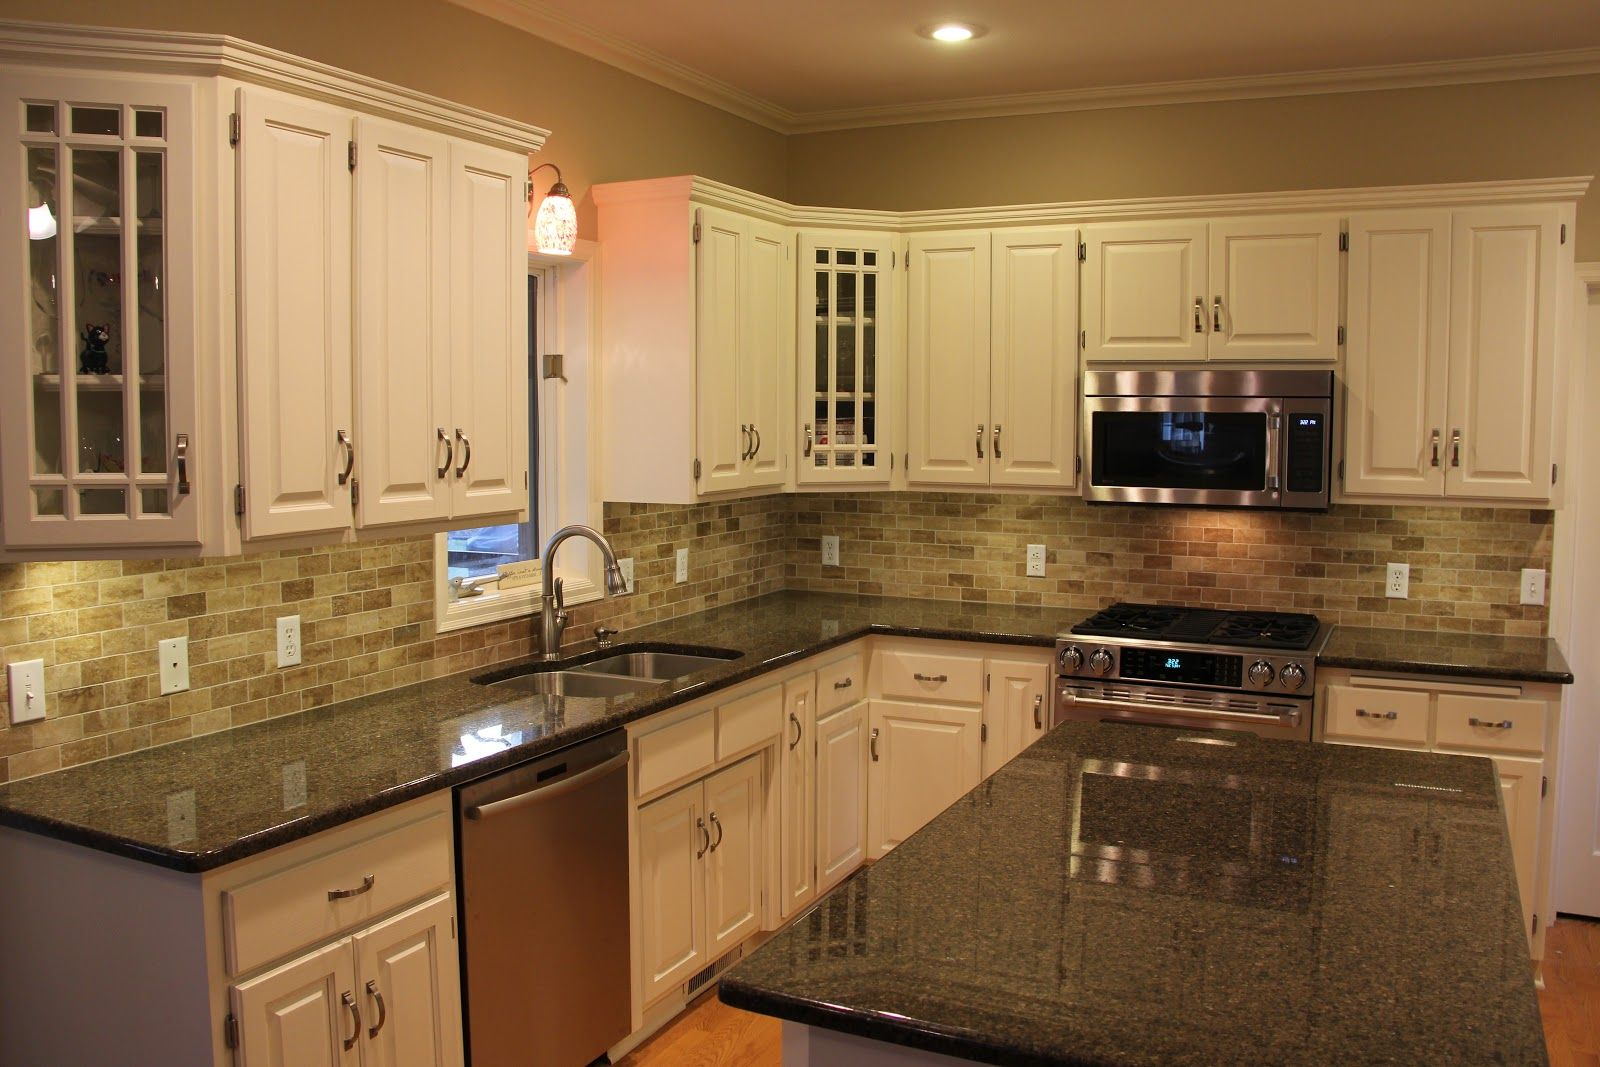 White Kitchens With Granite Countertops Kitchens With White Cabinets And Granite Countertops